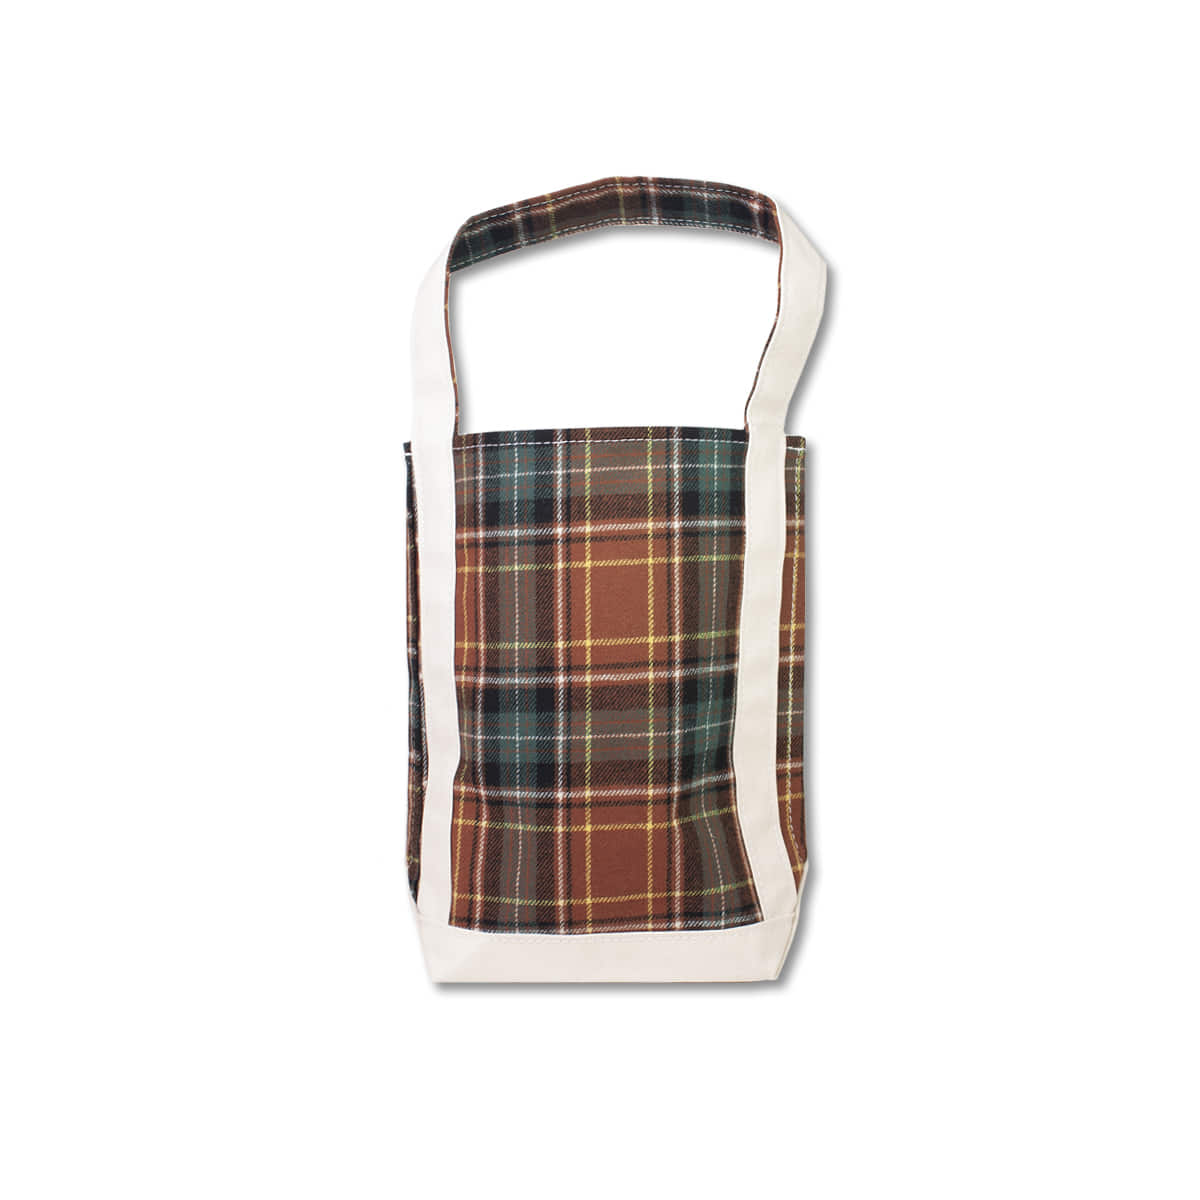 [TEMBEA] BAGUETTE TOTE SMALL 'BROWN CHECK'